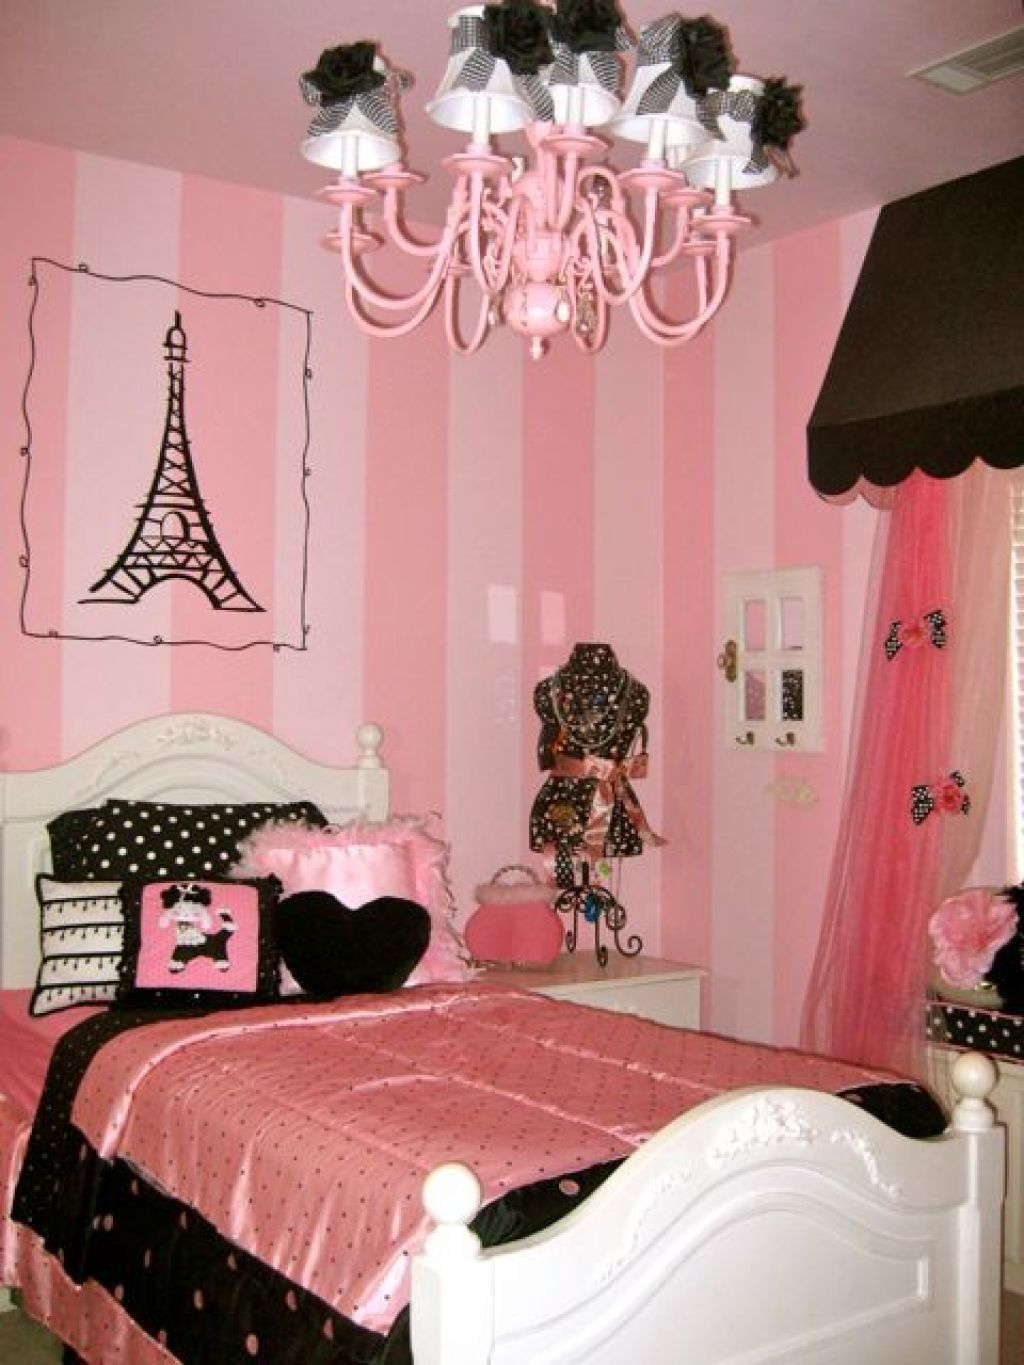 Paris Bedroom Decorating Ideas Paris Themed Bedroom For Girls Room  Bedroom Decorating Ideas